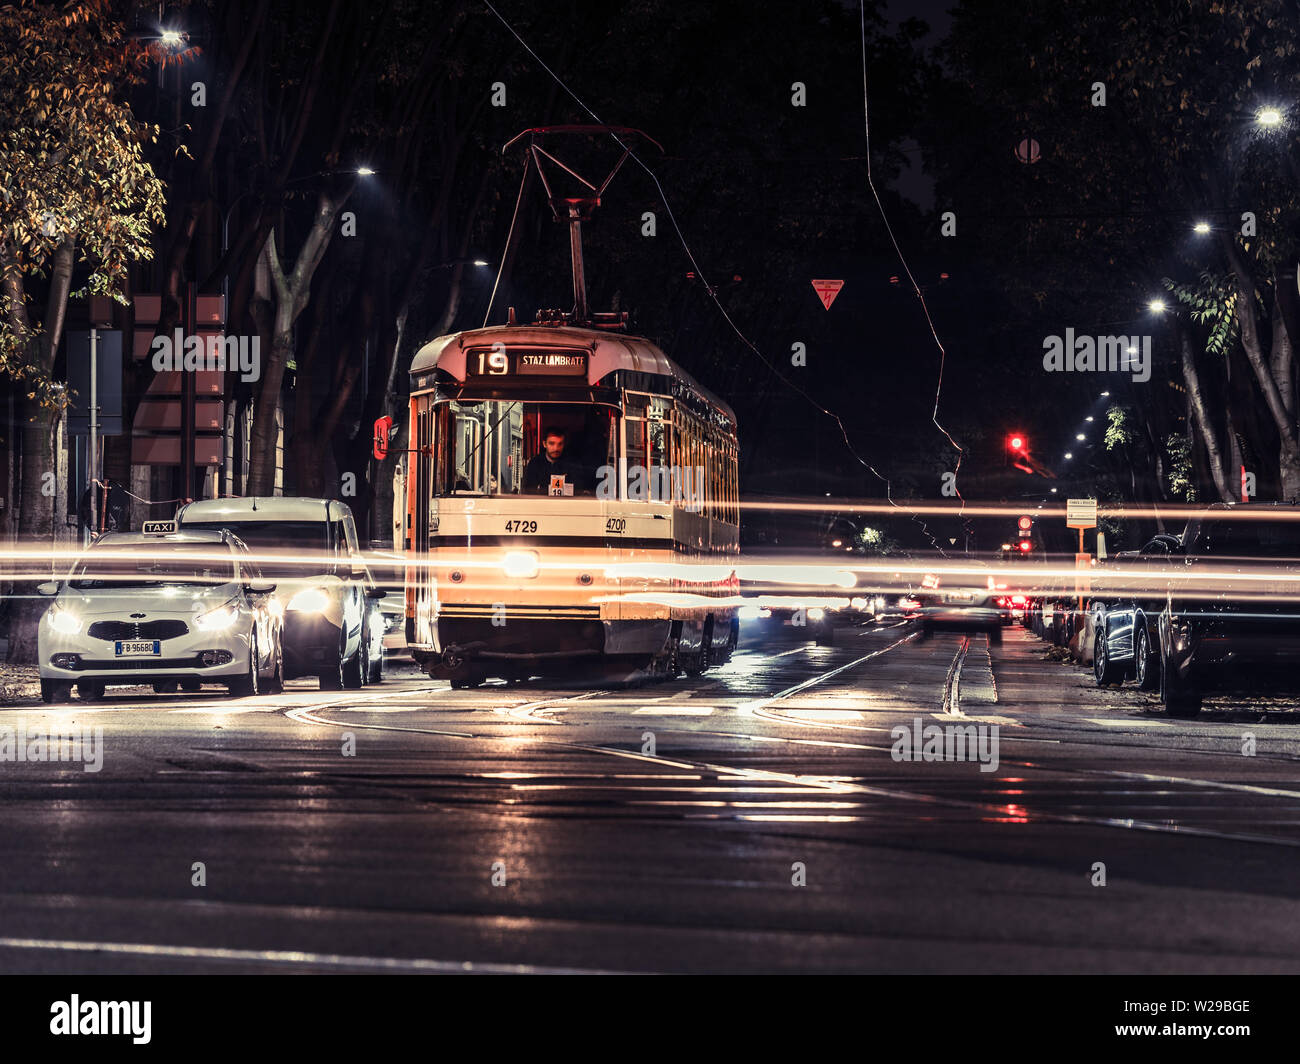 Milan, Italy, 09/11-18. A yellow tram has stopped, waiting for green light in a busy intersection. - Stock Image